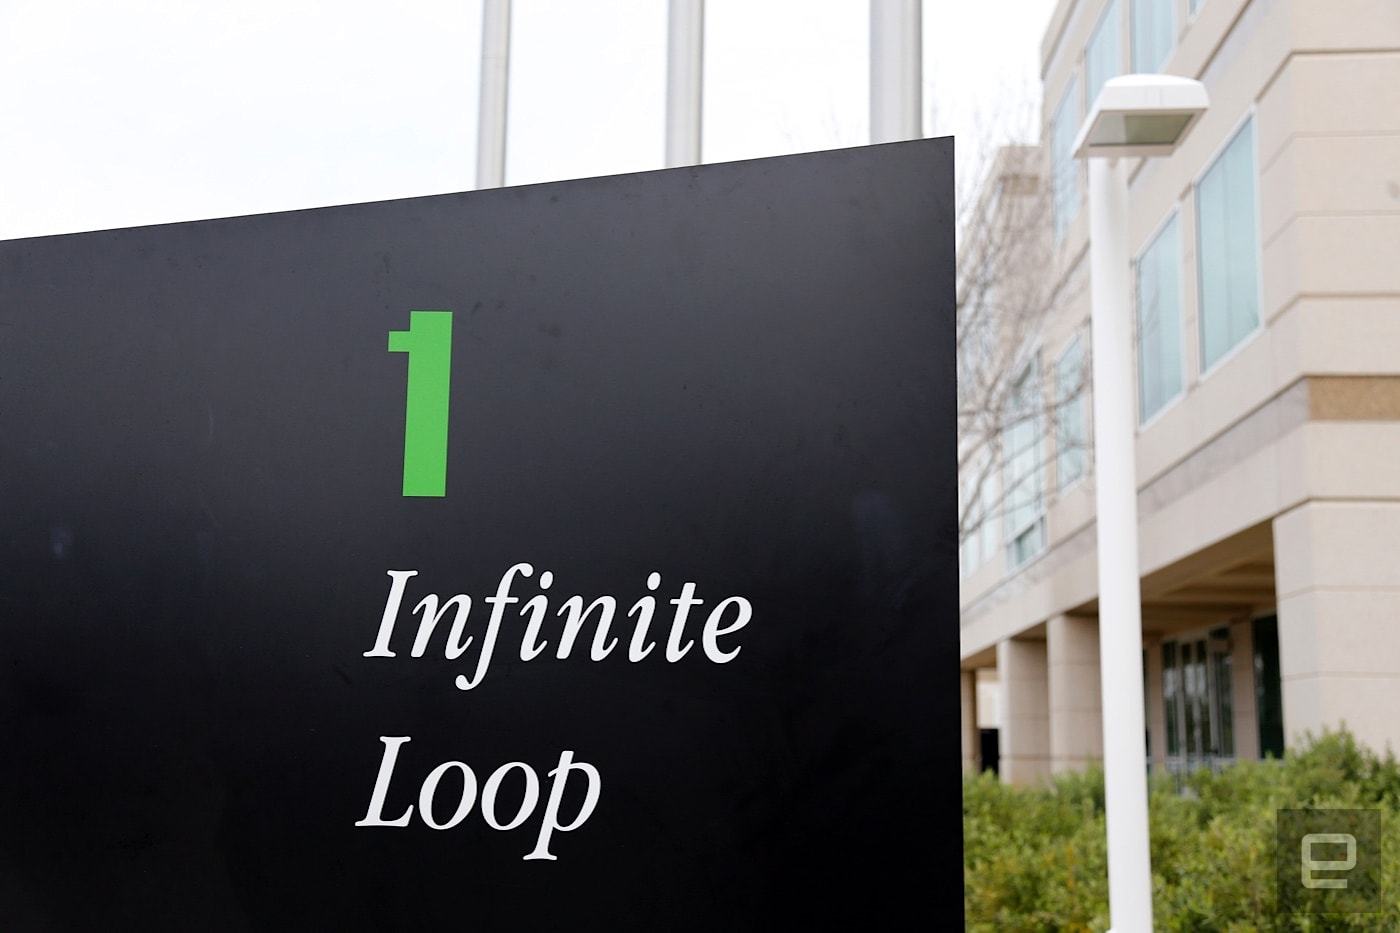 Apple's 'Loop You In' iPhone event, by the numbers